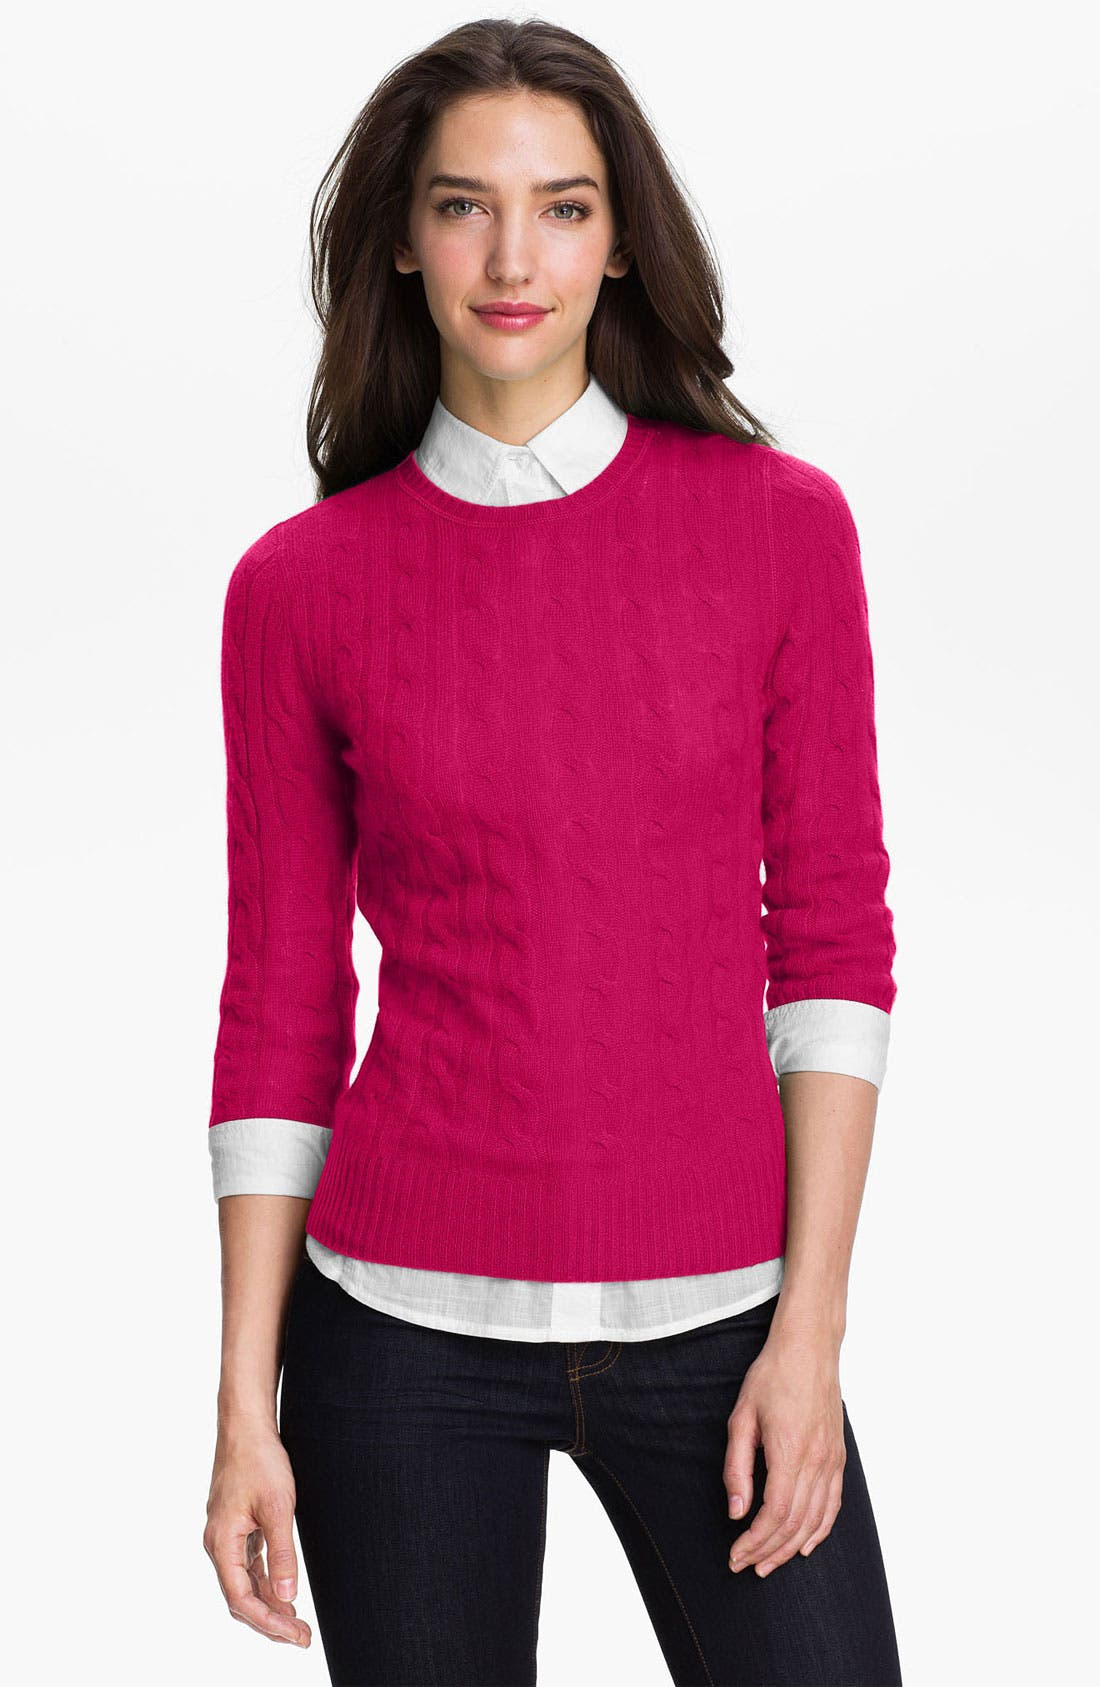 Cable Cashmere Sweater,                             Main thumbnail 1, color,                             Pink Fuchsia